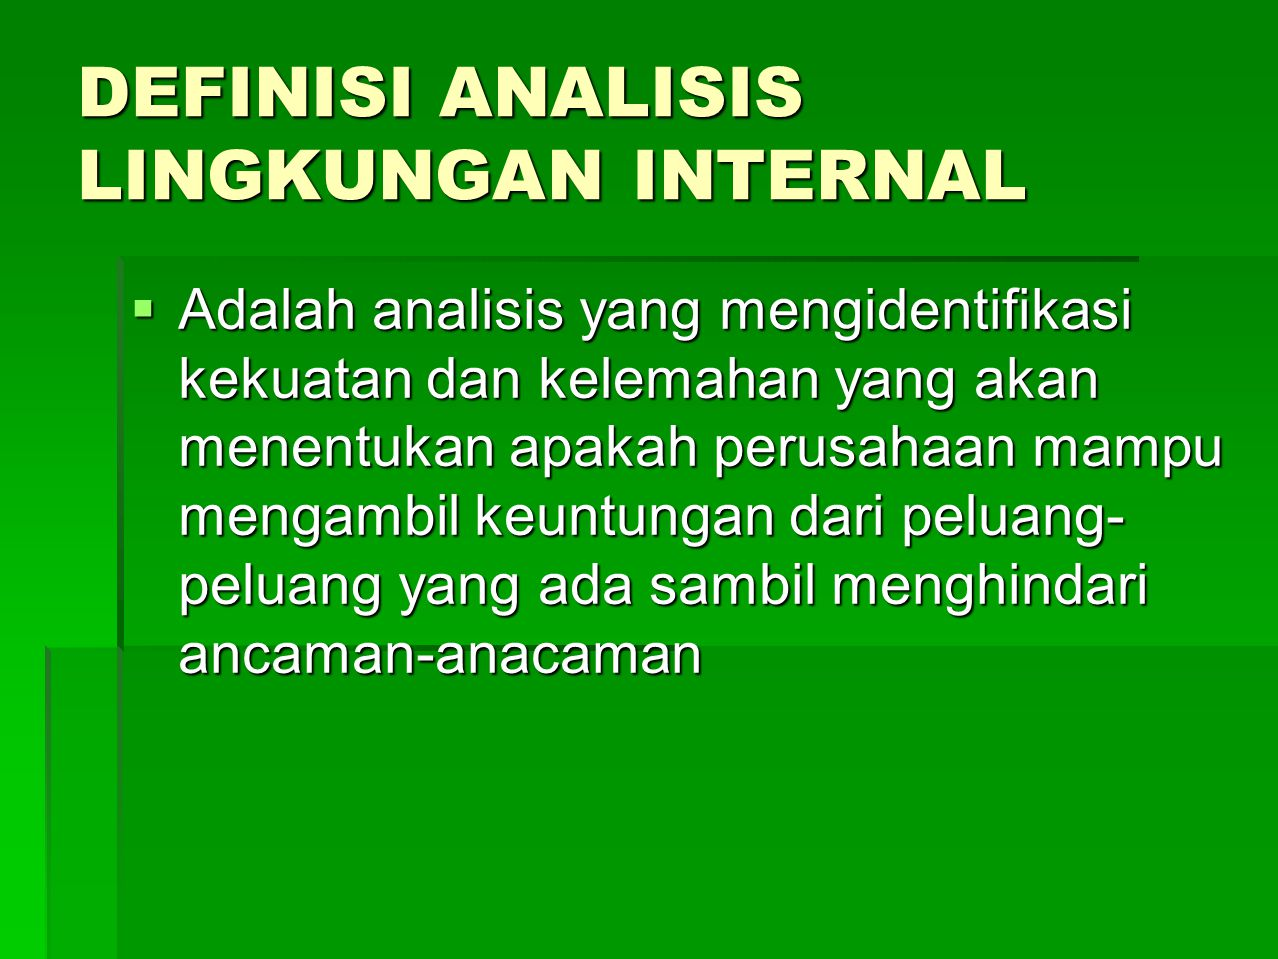 DEFINISI ANALISIS LINGKUNGAN INTERNAL